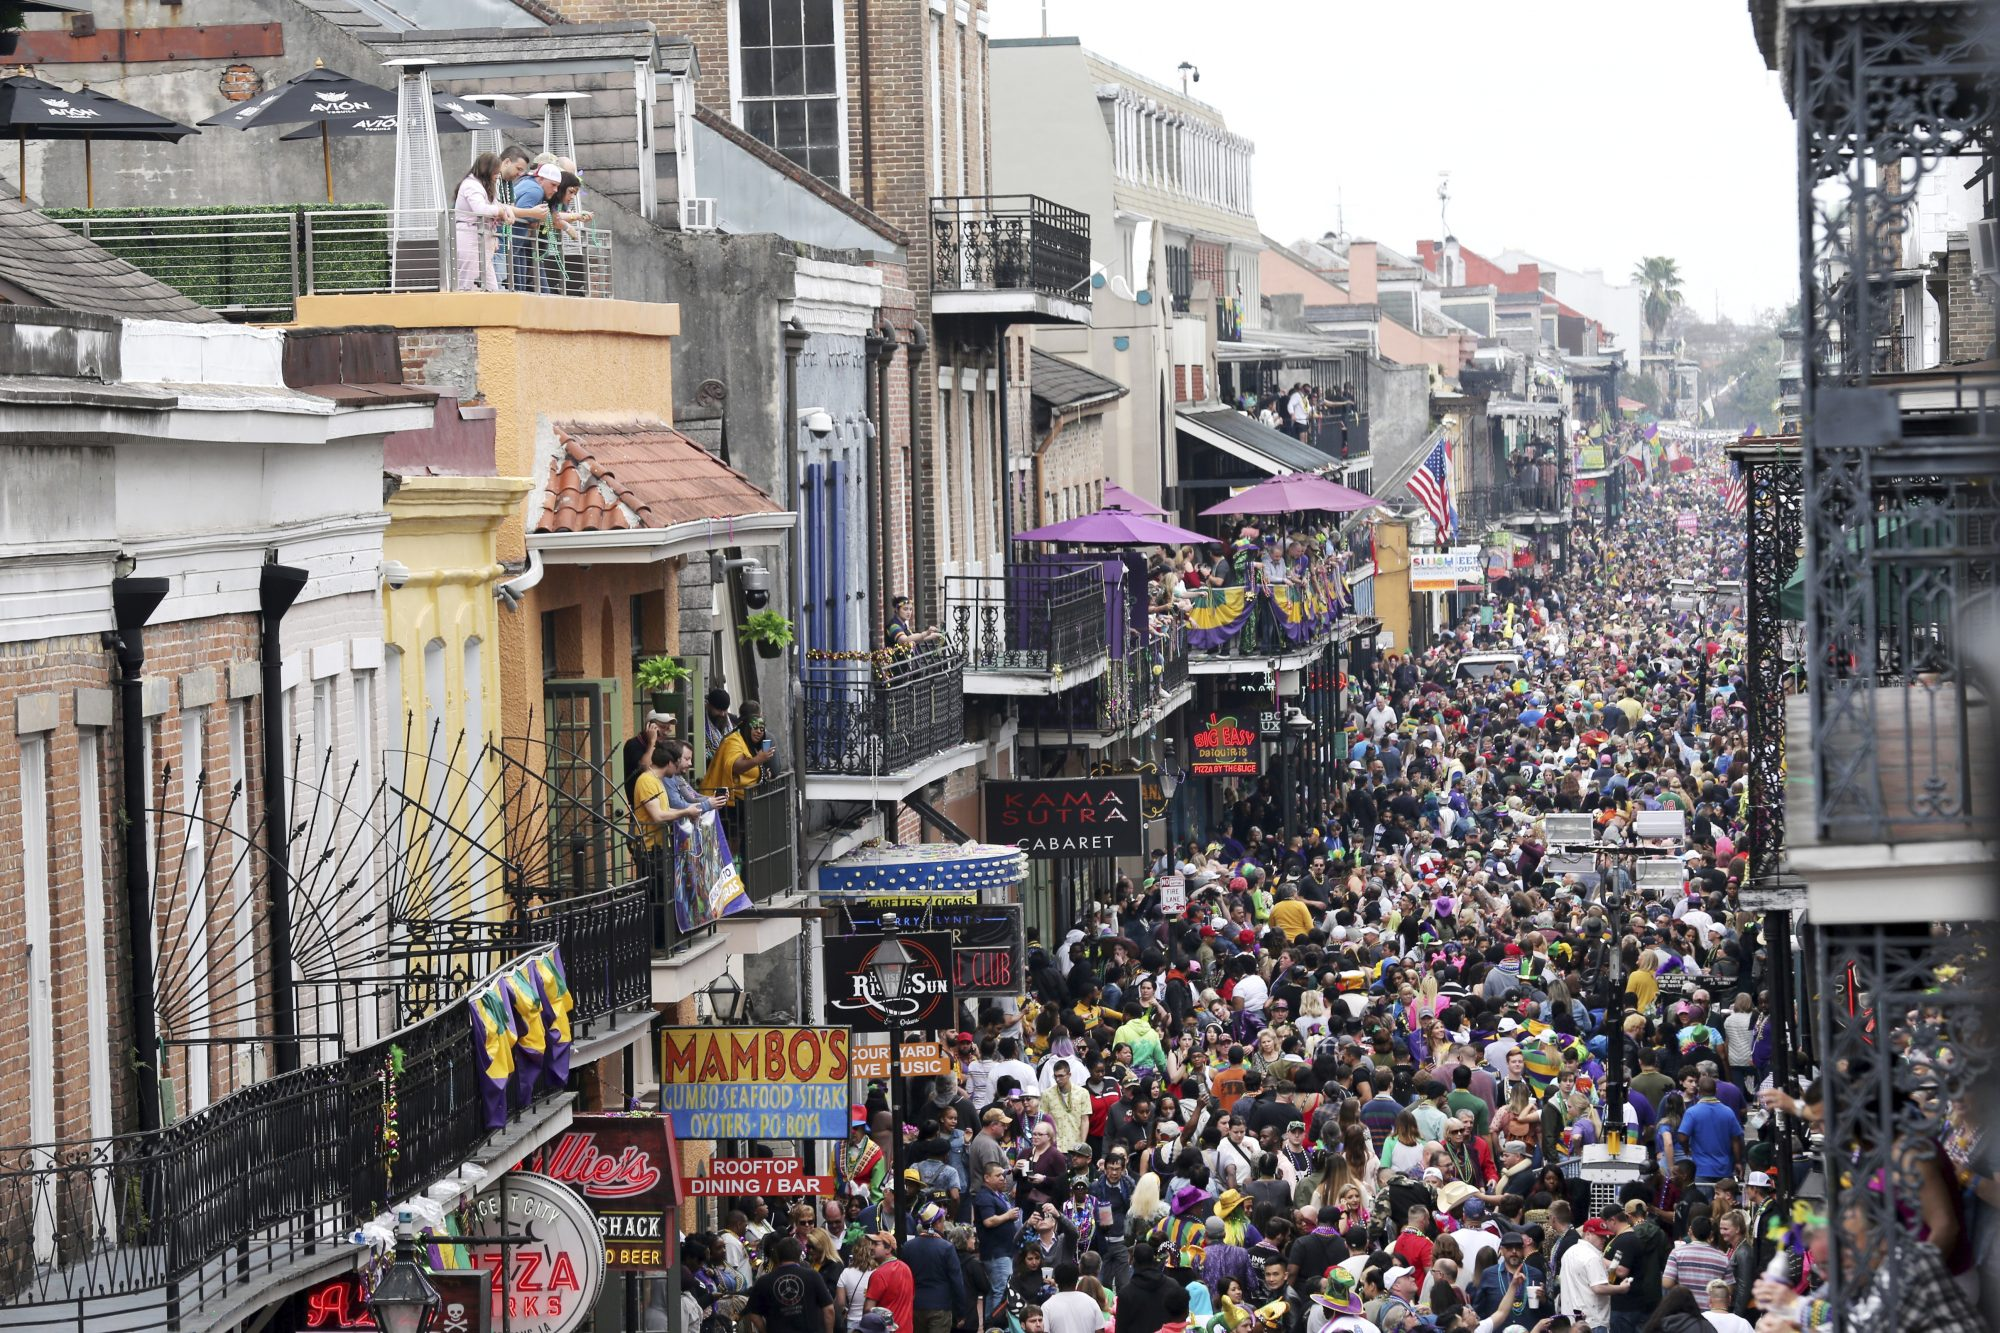 New Orleans takes on Coronavirus battle 15 years after hurricane - channel 4